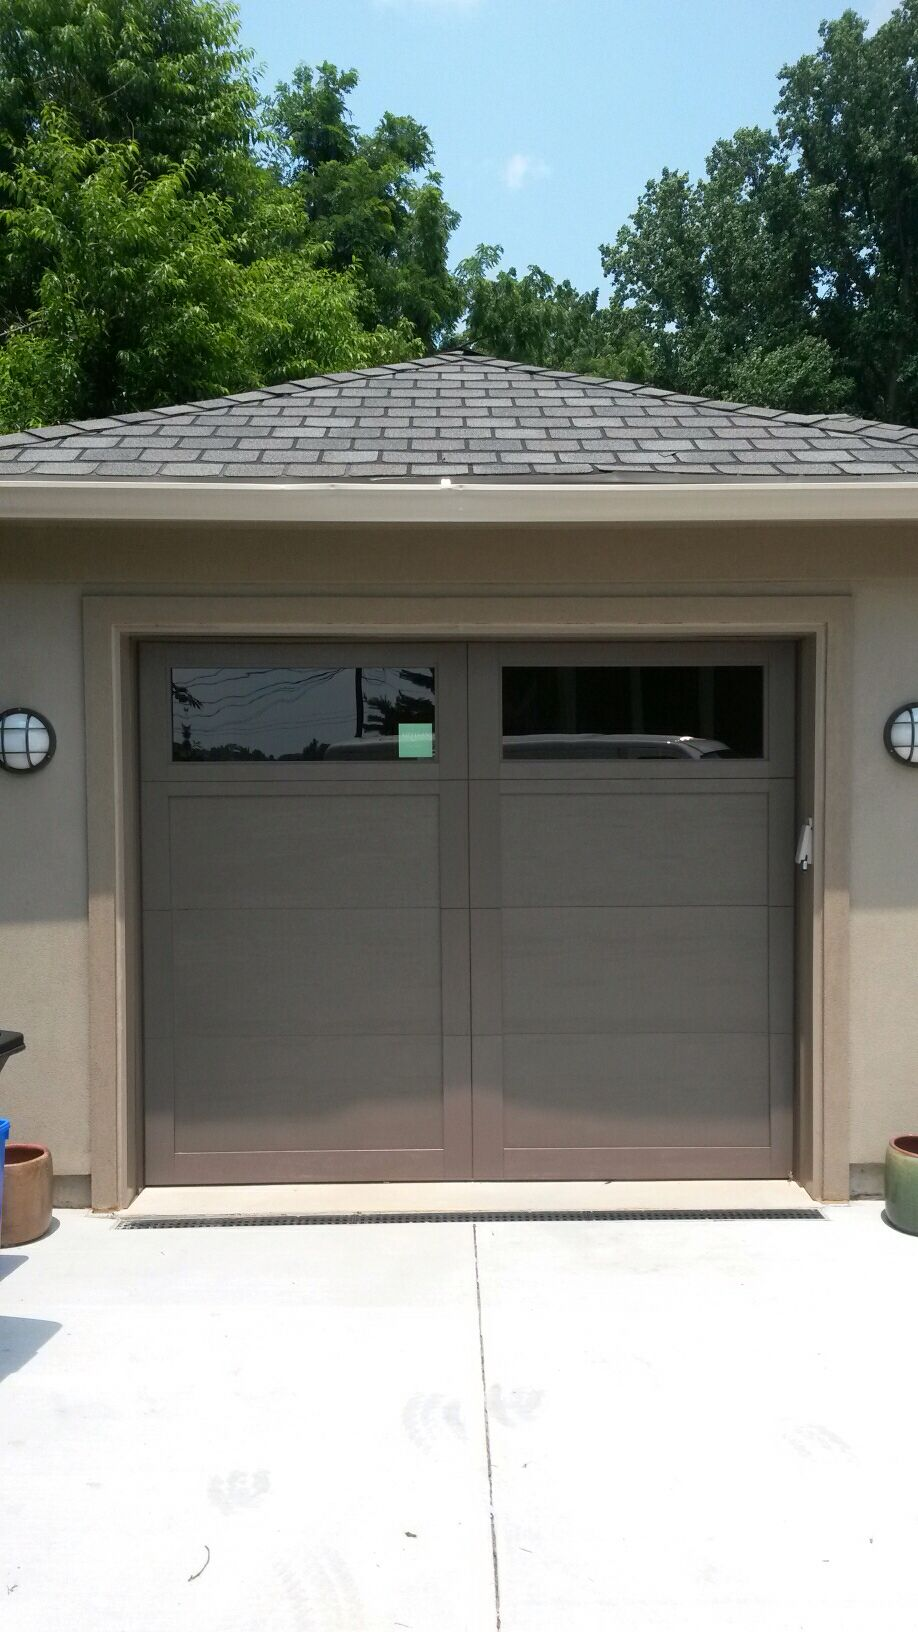 Steel And Composite Overlay Bronze Color Garage Door In Bethesda Md By Crisway Garage Doors Garage Doors Residential Garage Doors Steel Garage Doors